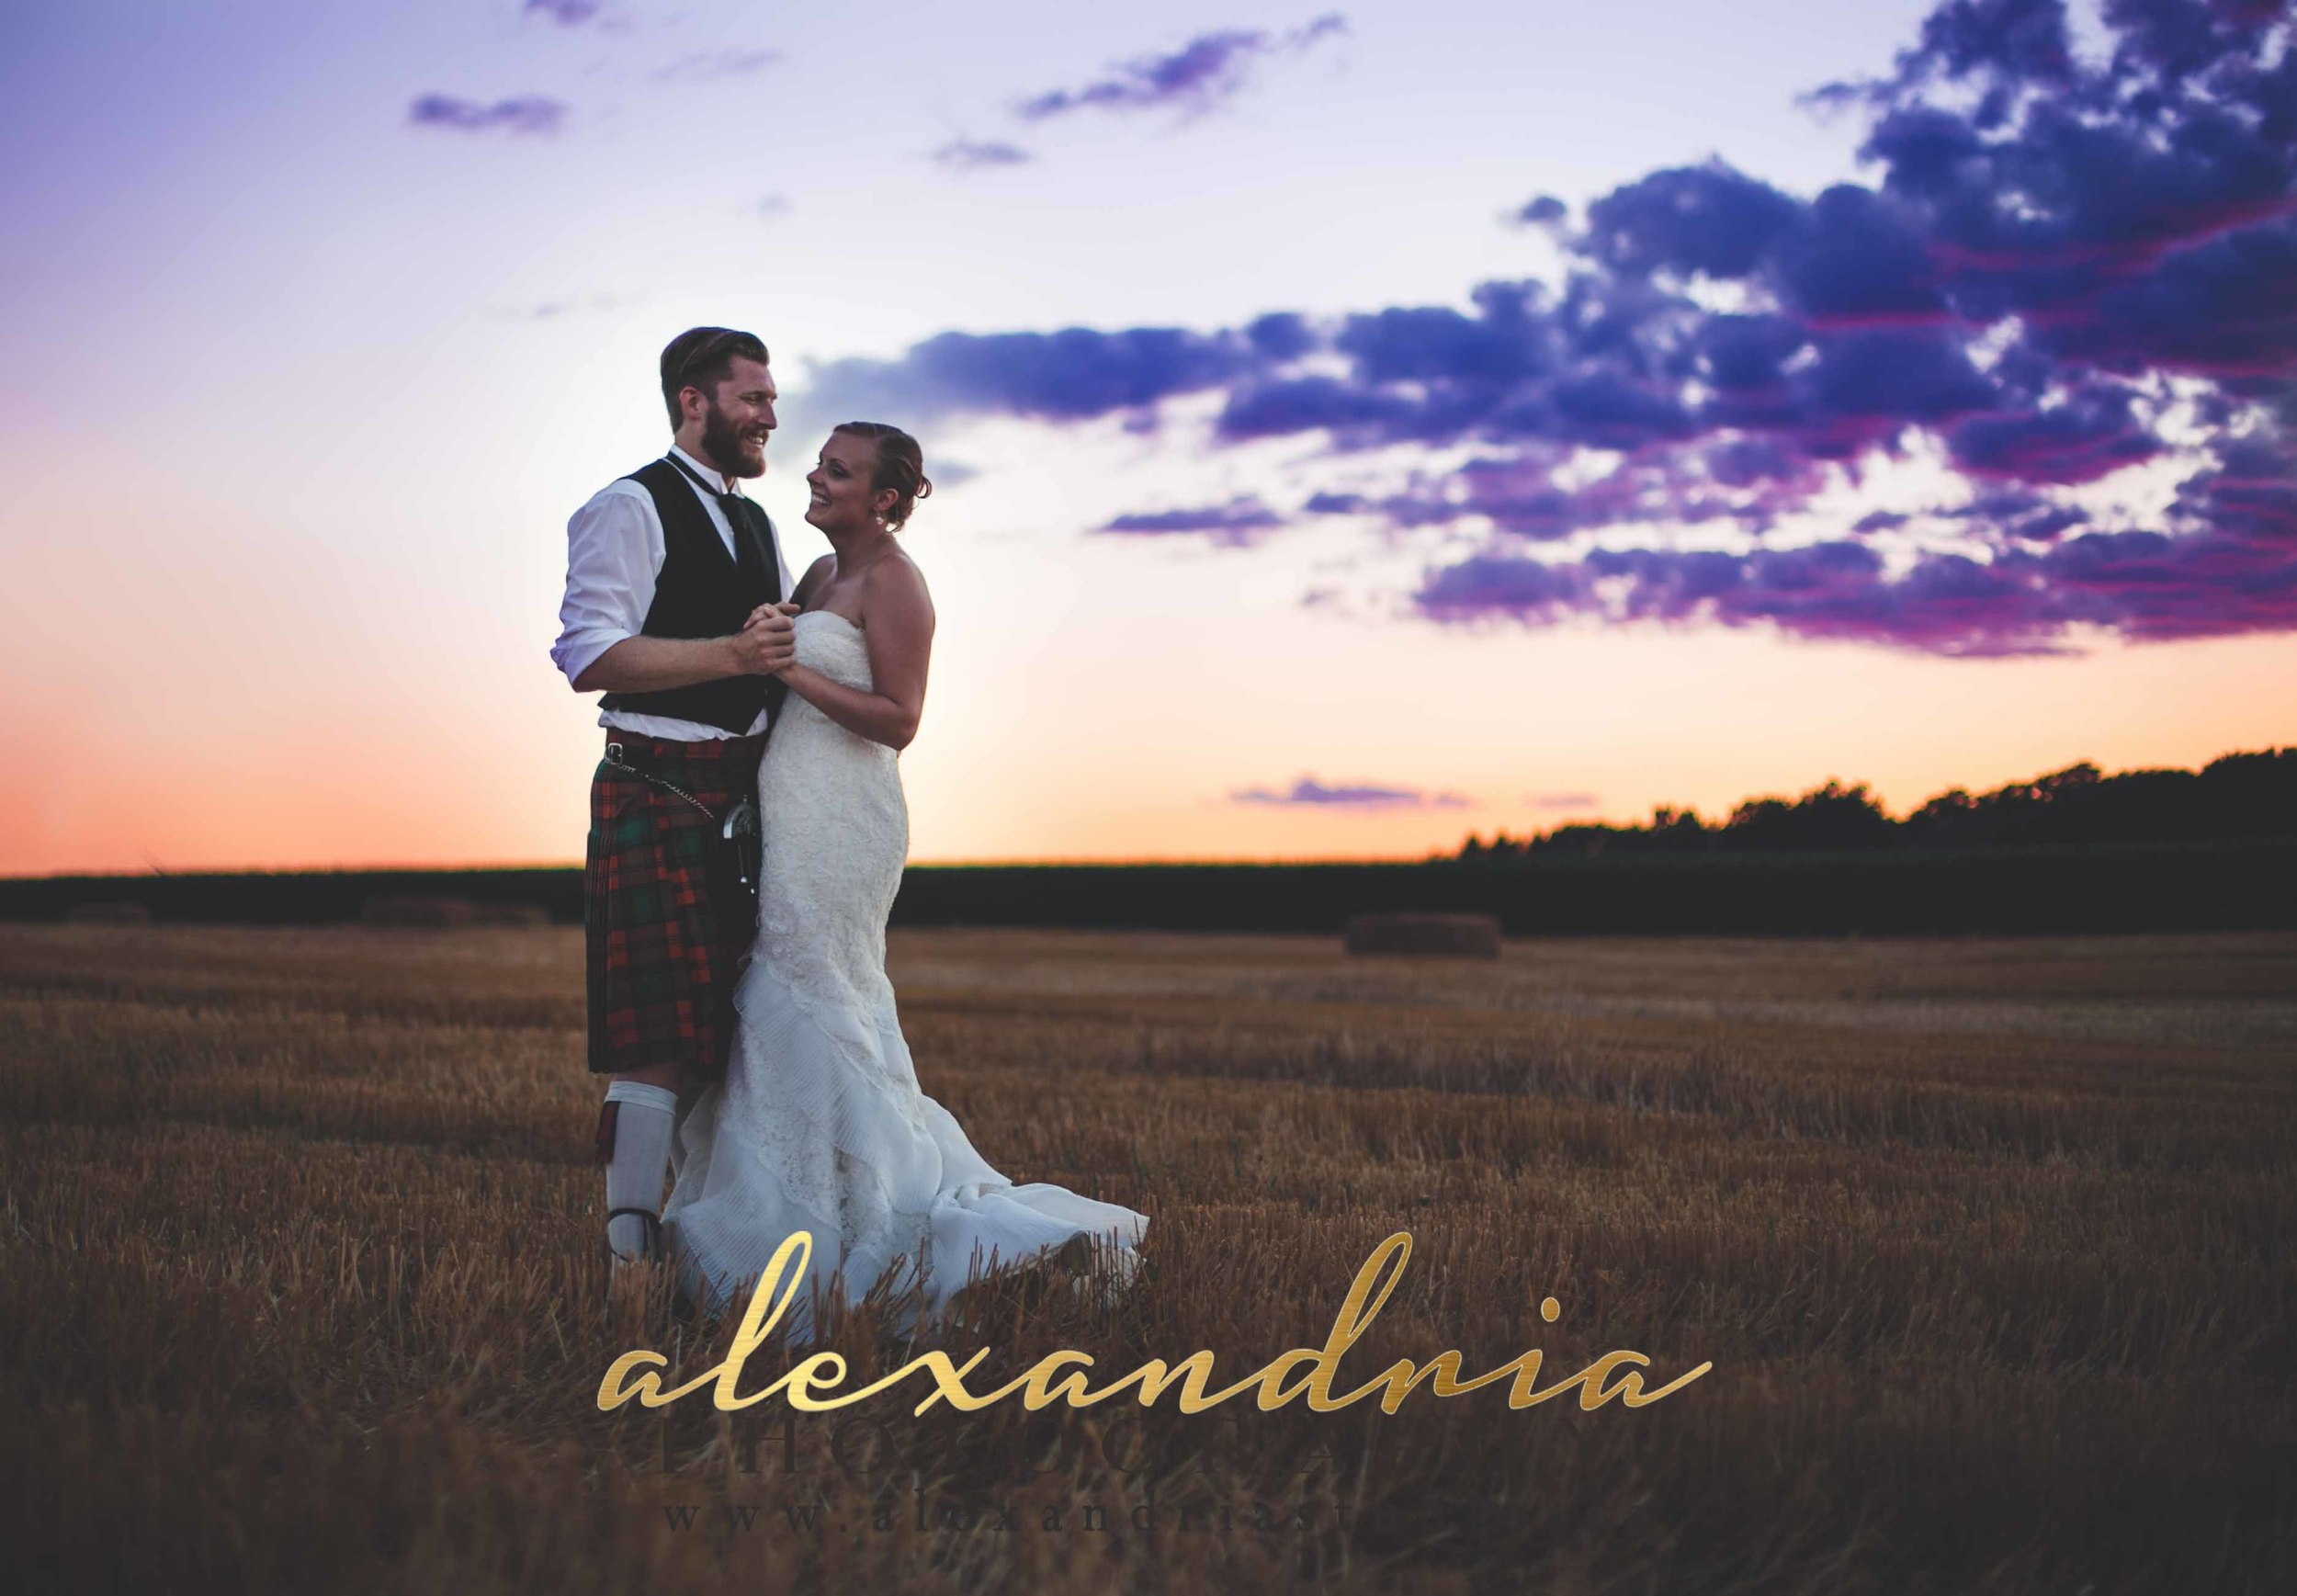 Alexandria Photography R&K Wedding_-3.jpg